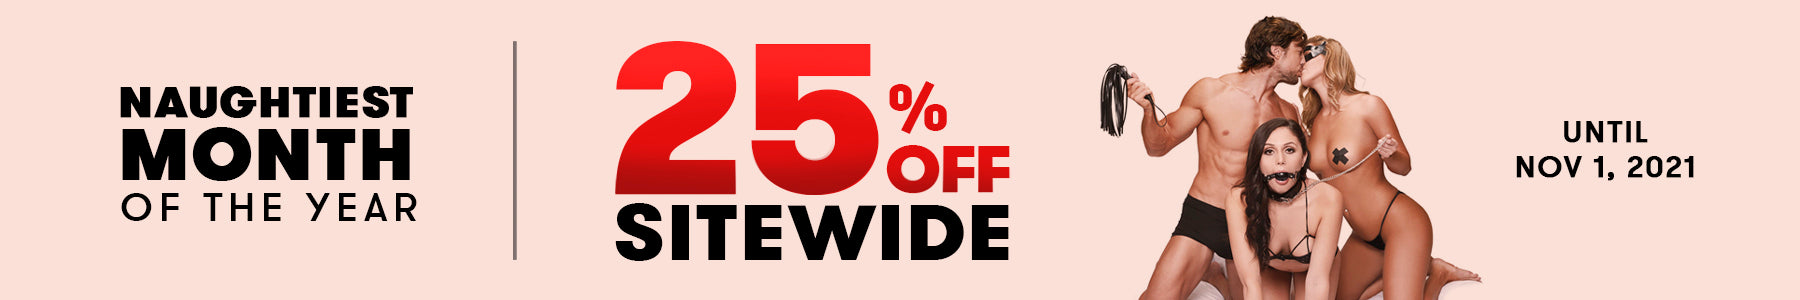 Lux Fetish Naughtiest Month of the Year: 25% off Sitewide until Nov 1st, 2021